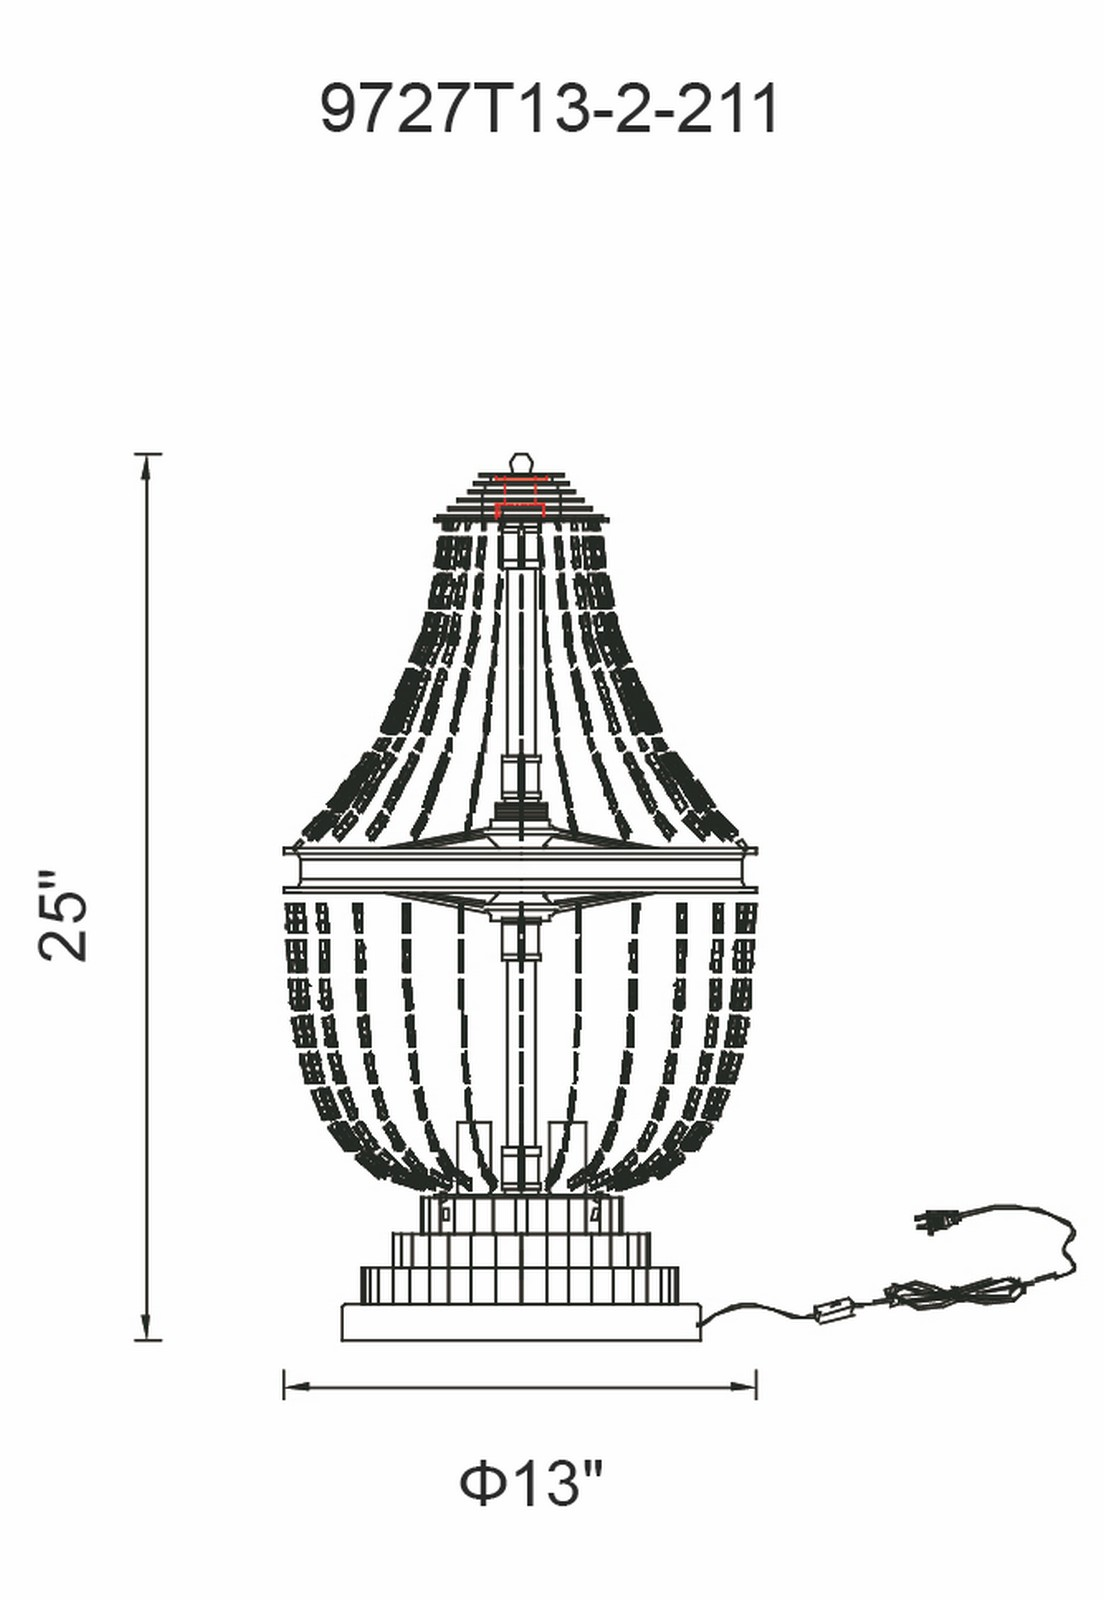 CWI Lighting Kala 2 Light Table Lamp With Antique Bronze Finish Model: 9727T13-2-211 Line Drawing